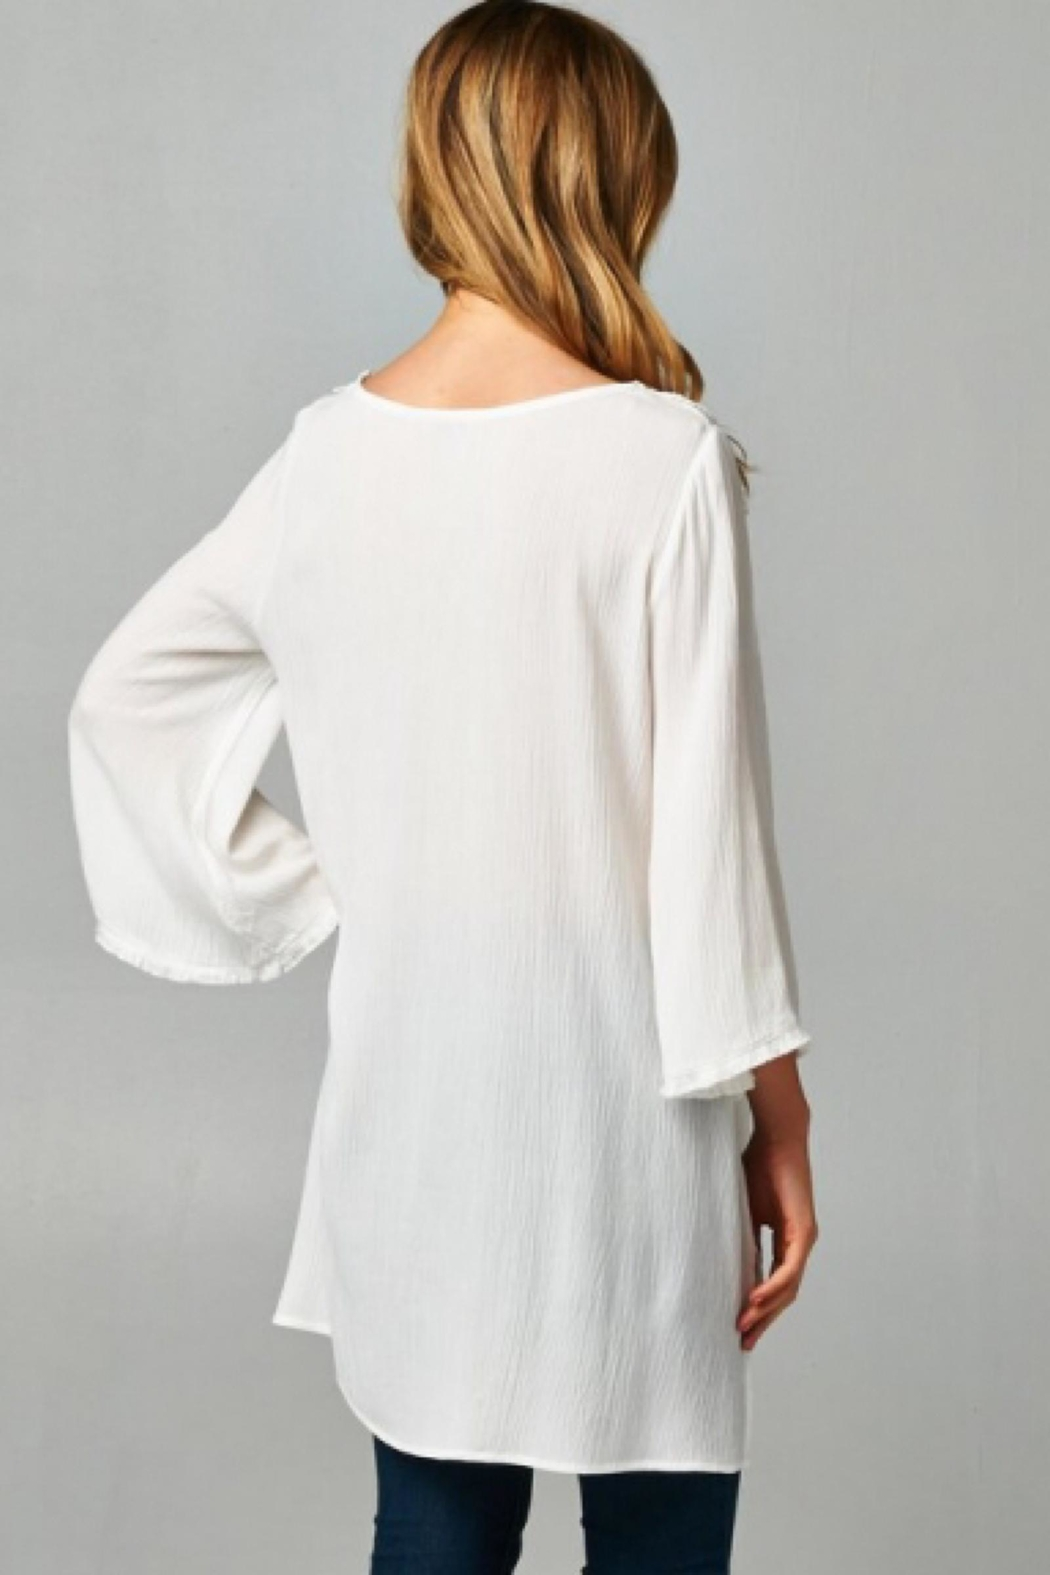 People Outfitter White Lace Tunic - Front Full Image